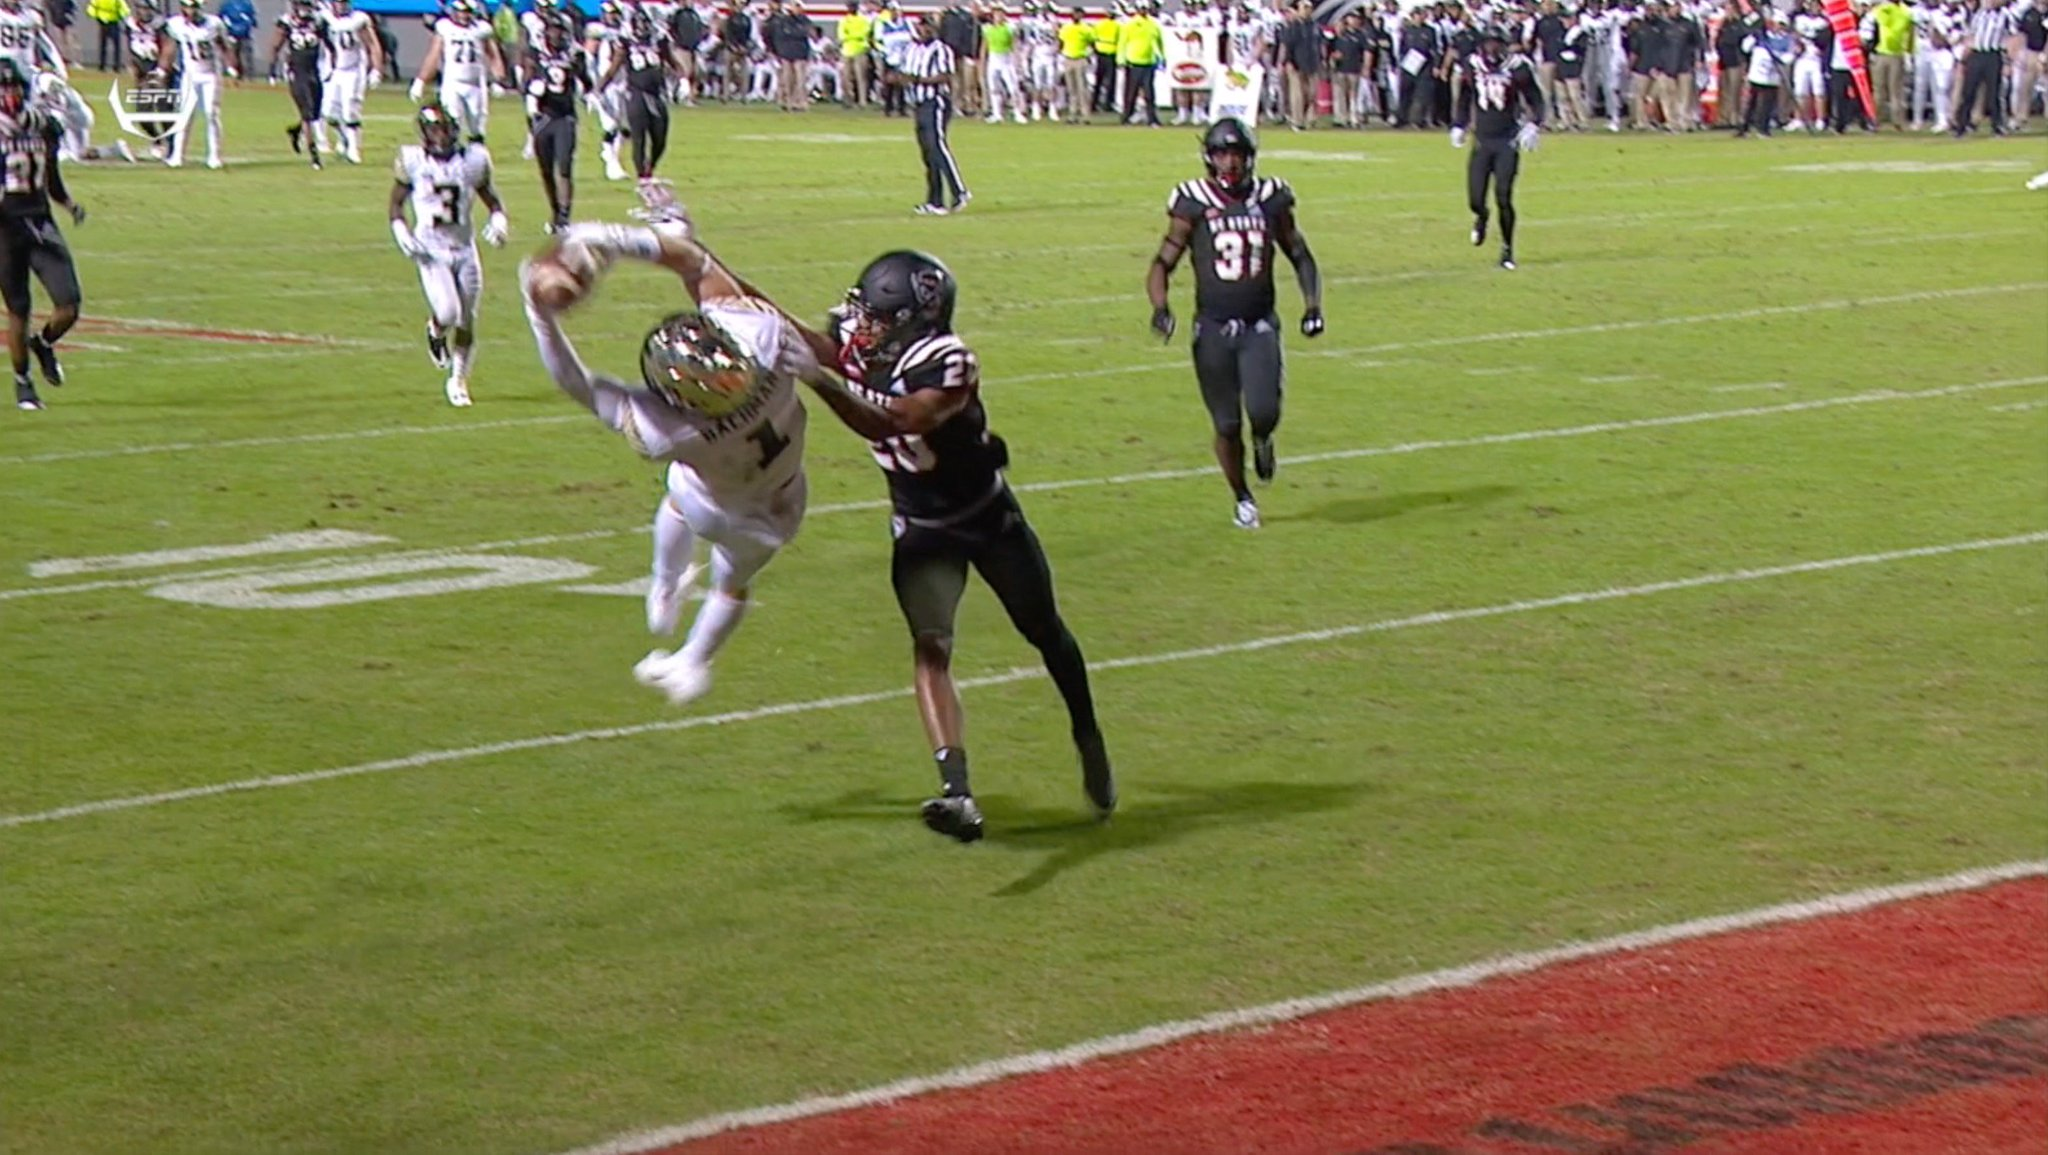 Styling for 6 with #SCtop10 catches on BACK-TO-BACK plays �� https://t.co/rrh3GyzOr8